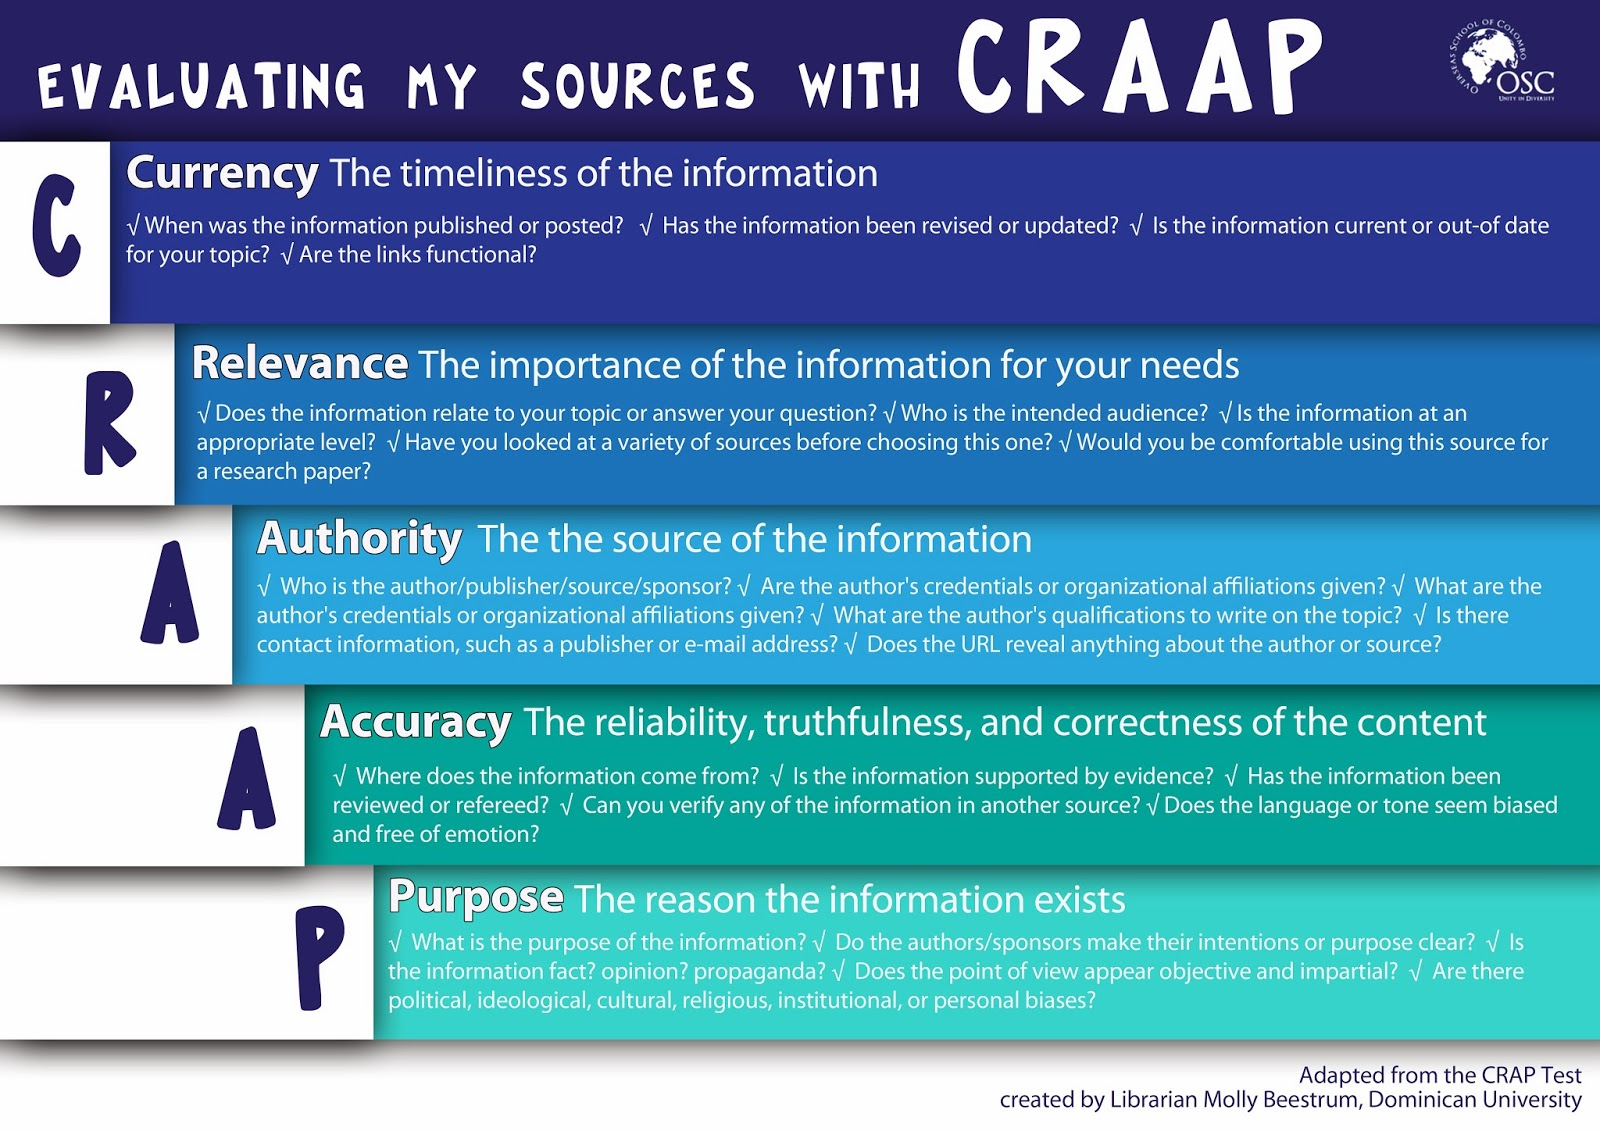 002 What Makes Source Credible For Research Paper Craap 1  Unbelievable A Are Information Sources Is ConsideredFull